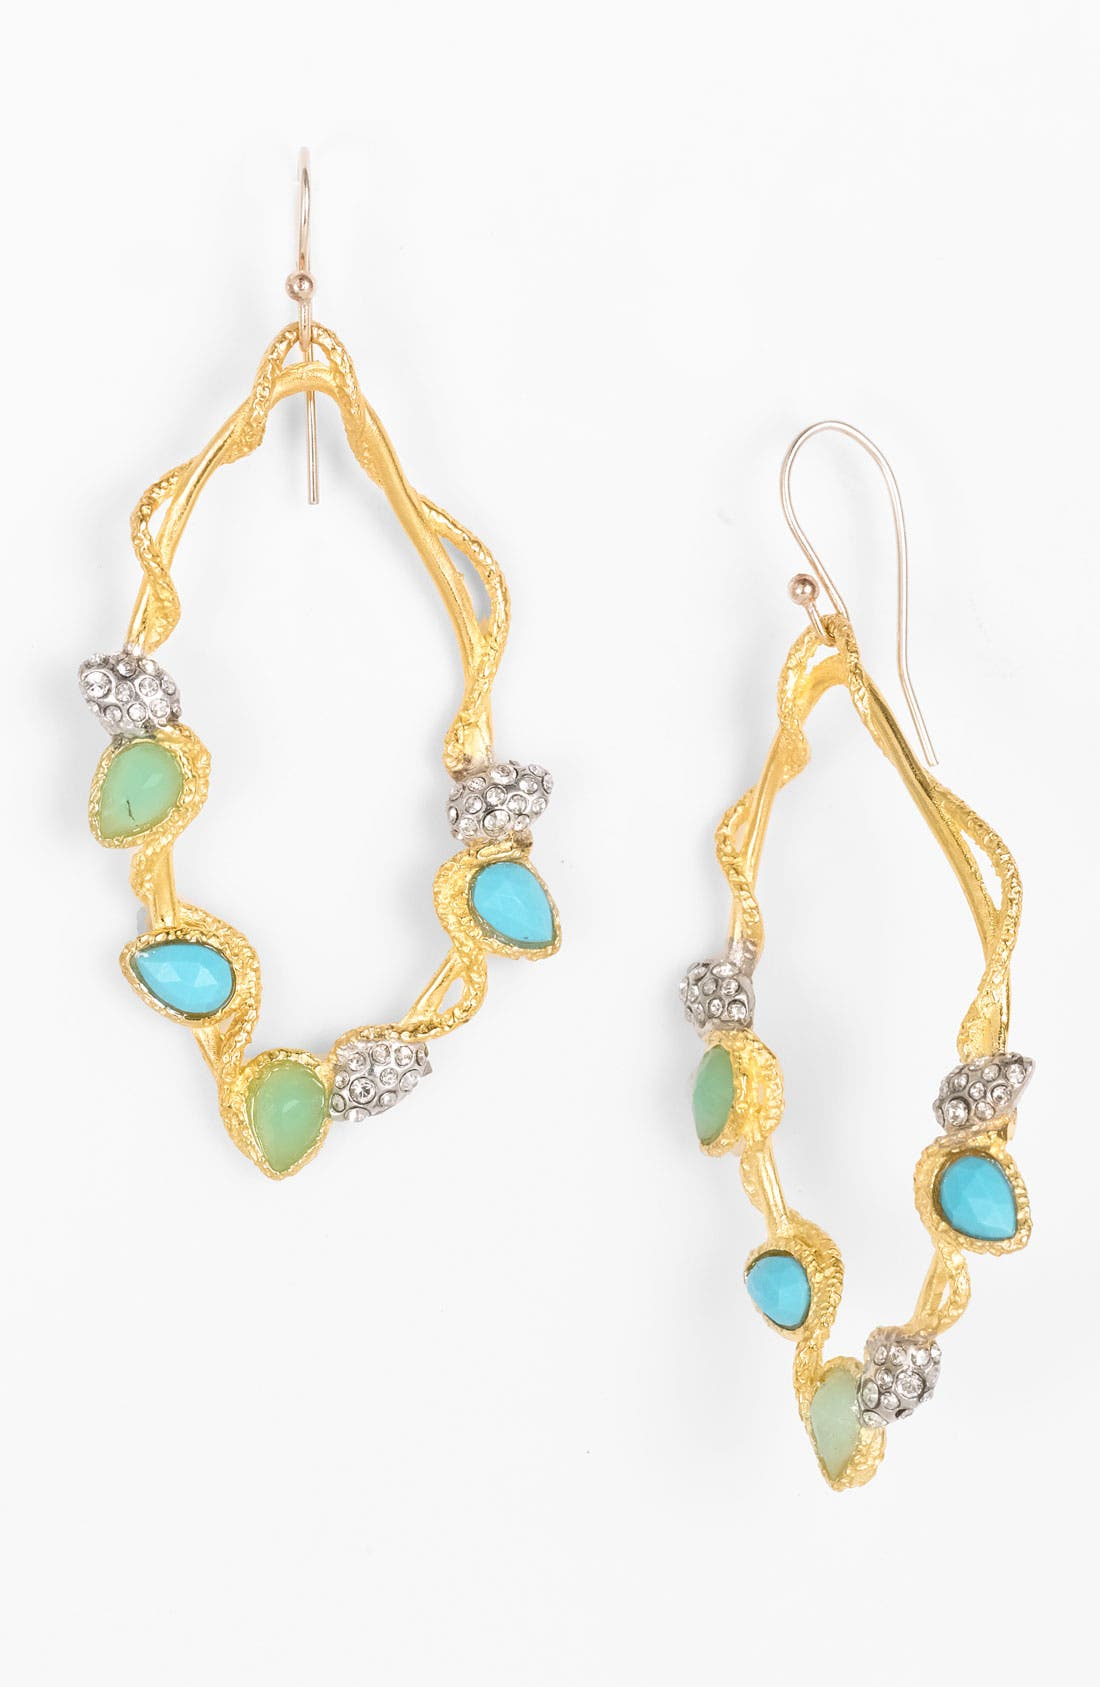 Main Image - Alexis Bittar 'Elements' Pavé Vine Teardrop Earrings (Nordstrom Exclusive)